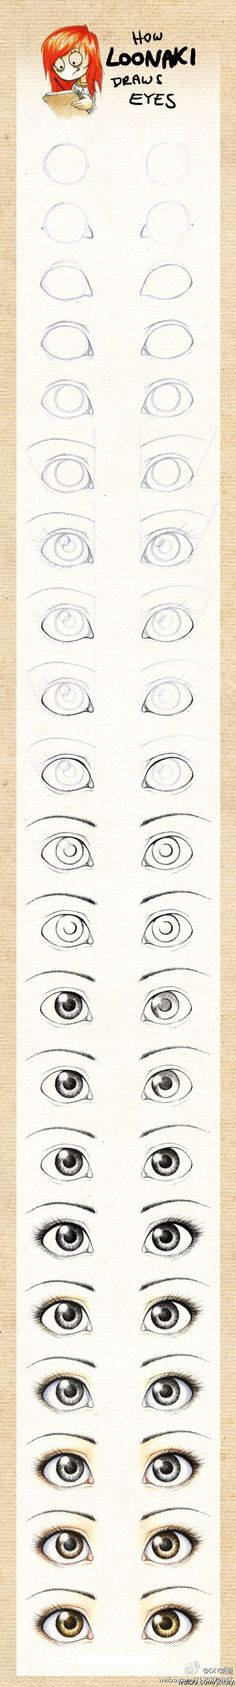 How to draw eyes….um why do I think this is cute? Anyways I guess I may have to start drawing characters…PEOPLE characters…